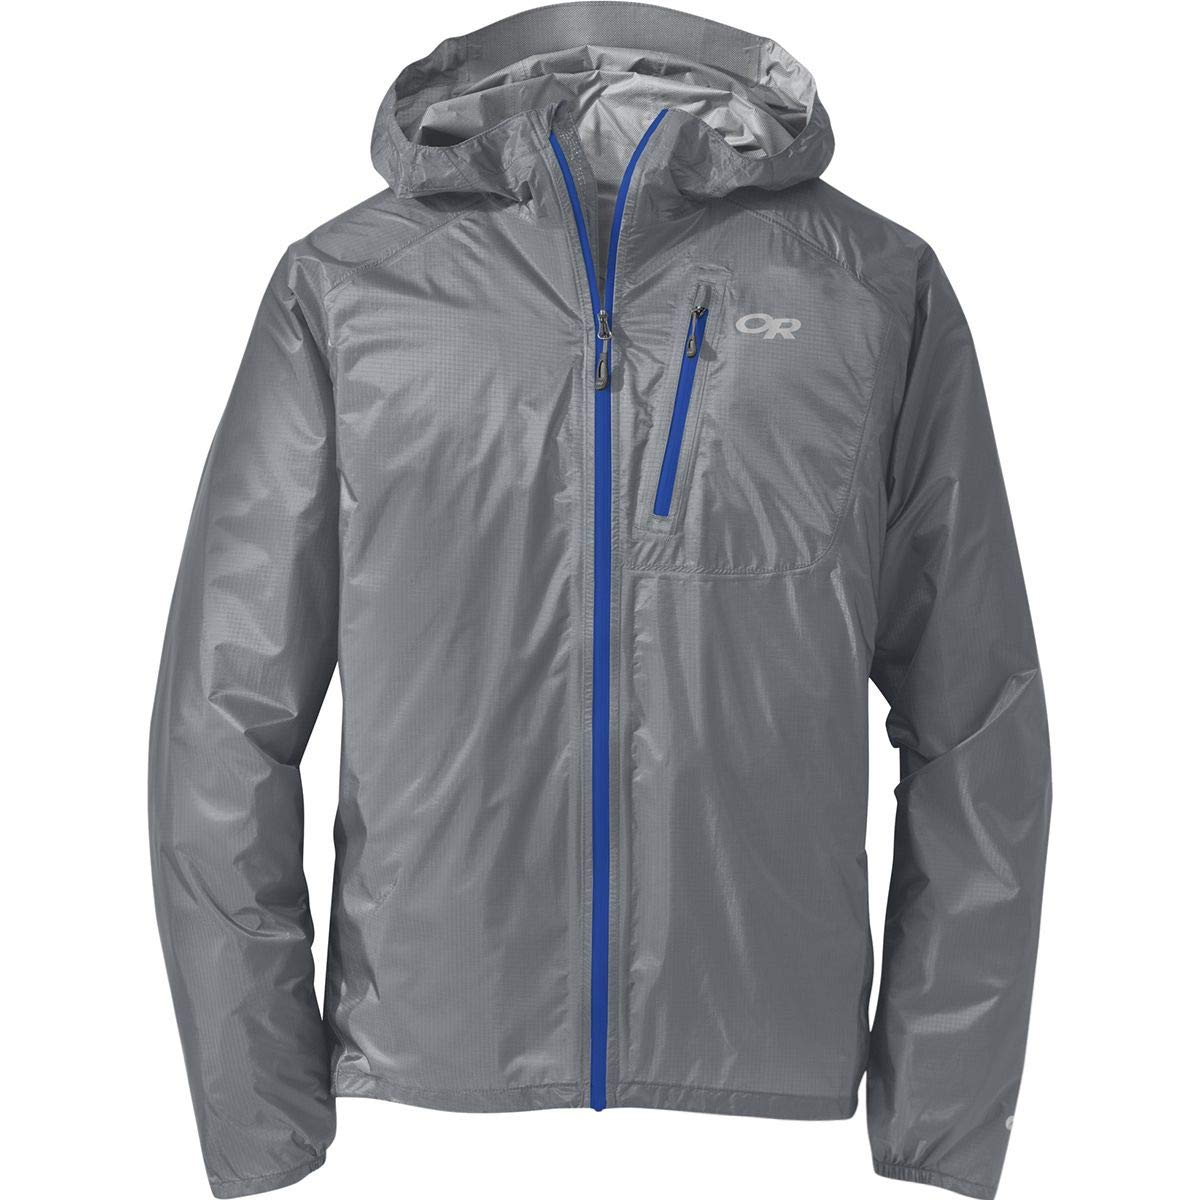 Outdoor Research Helium II Men's Jacket: Light Pewter, MD by Outdoor Research